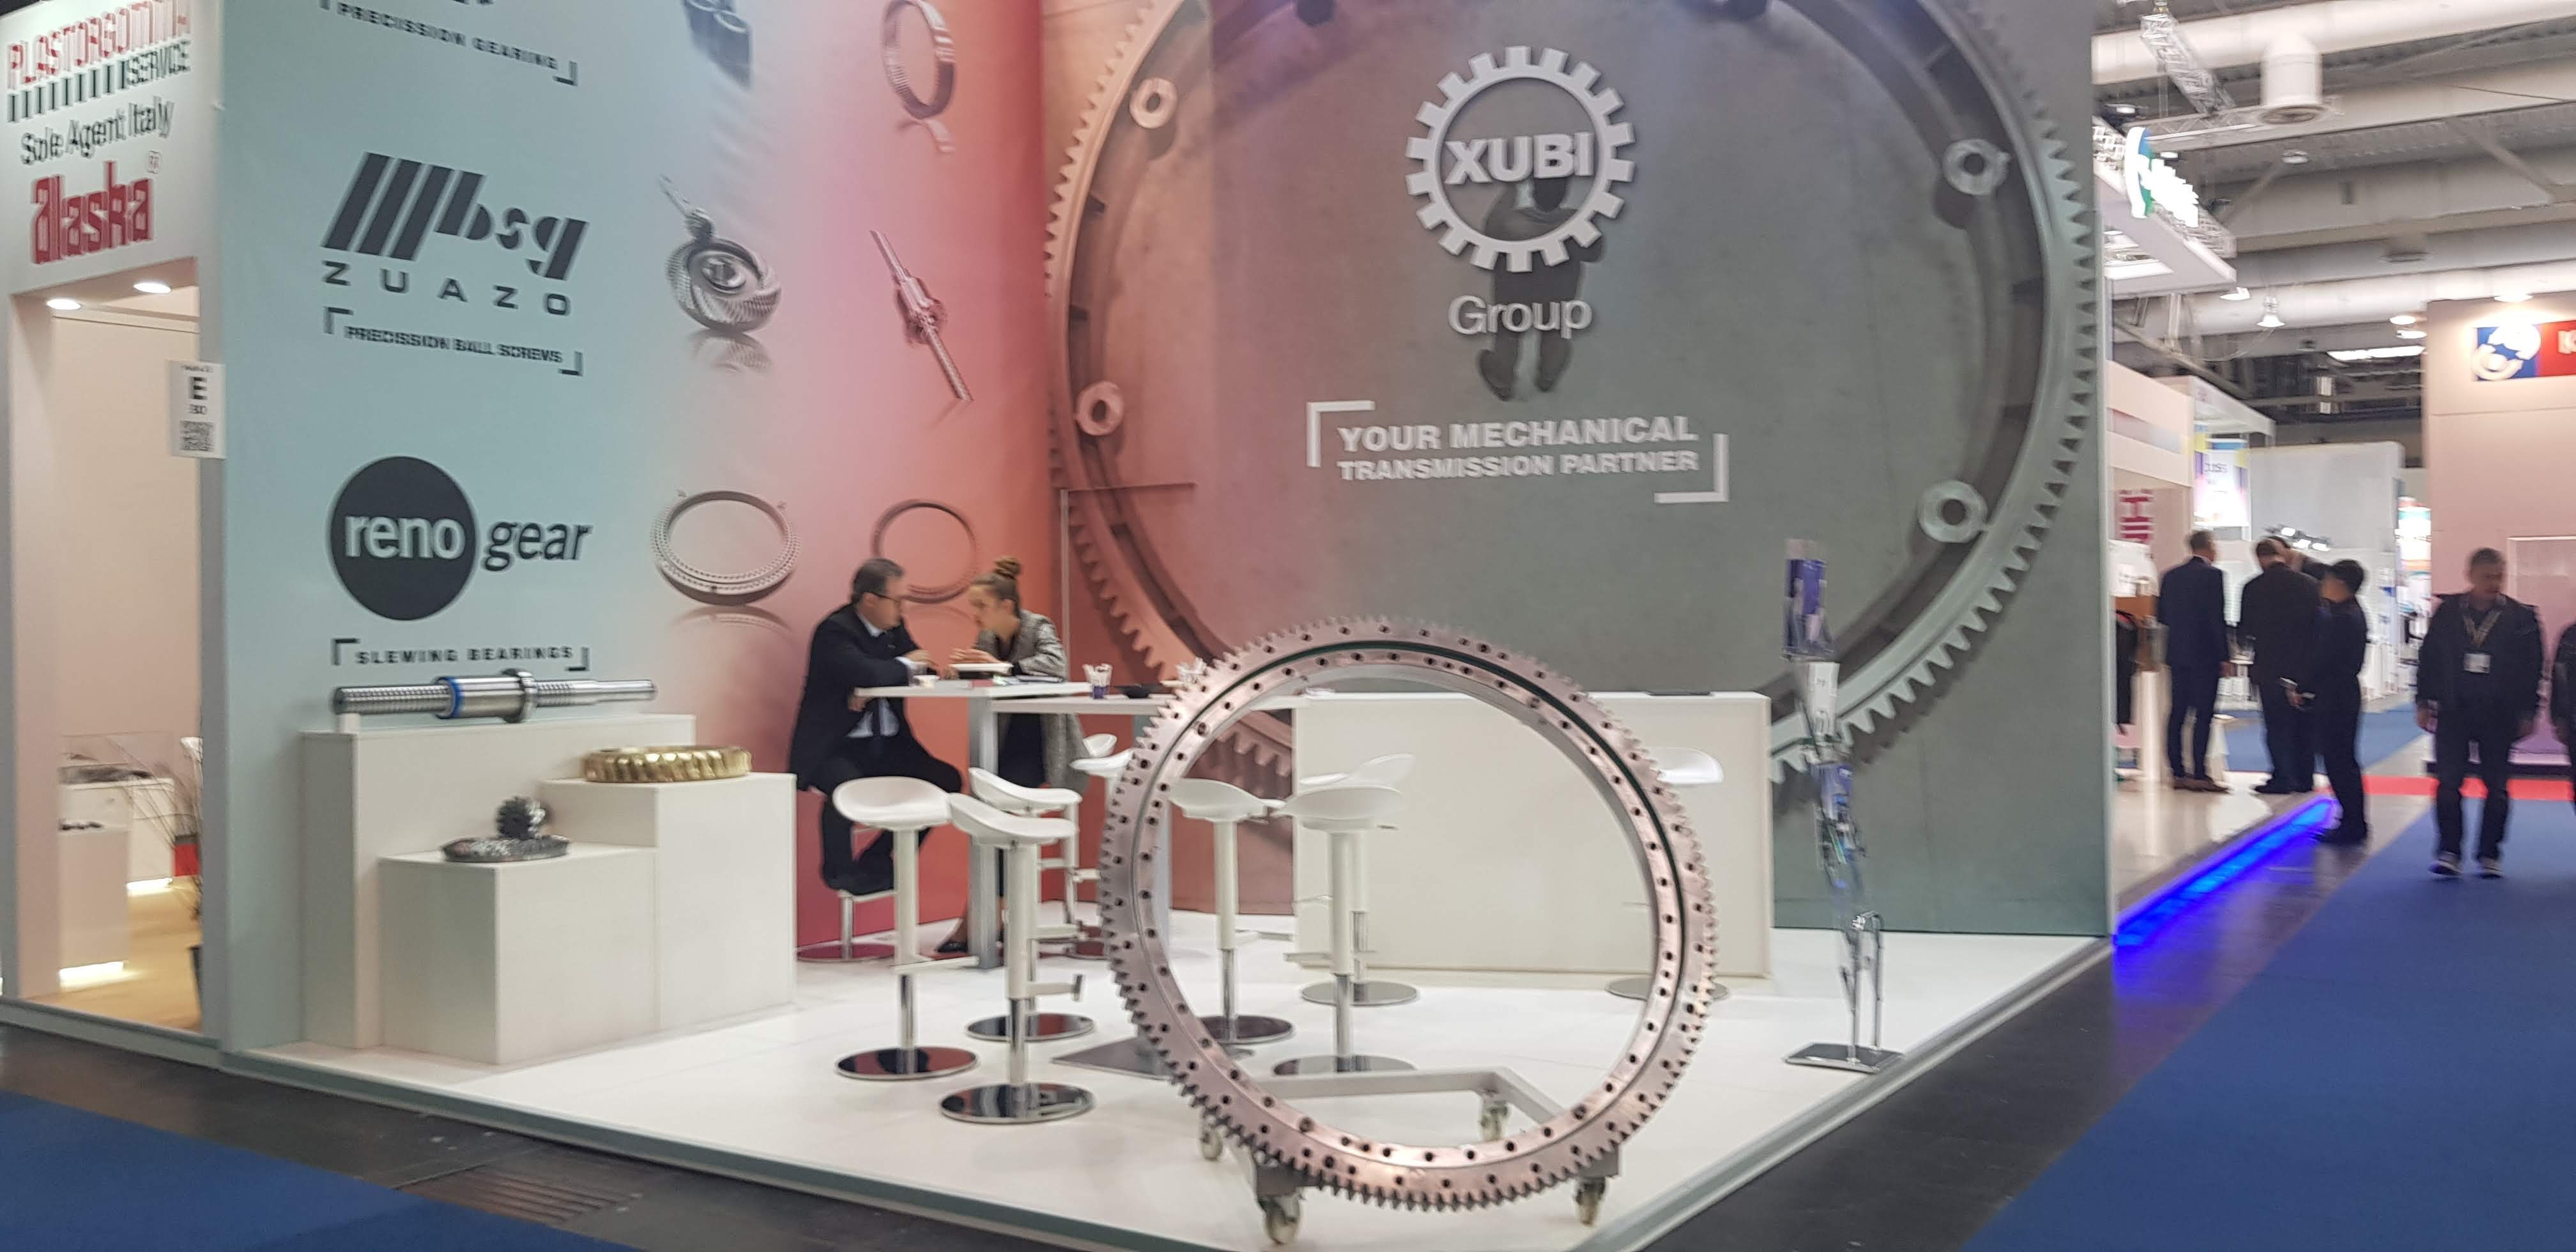 Xubi Group at the Hannover Messe 2019 trade fair